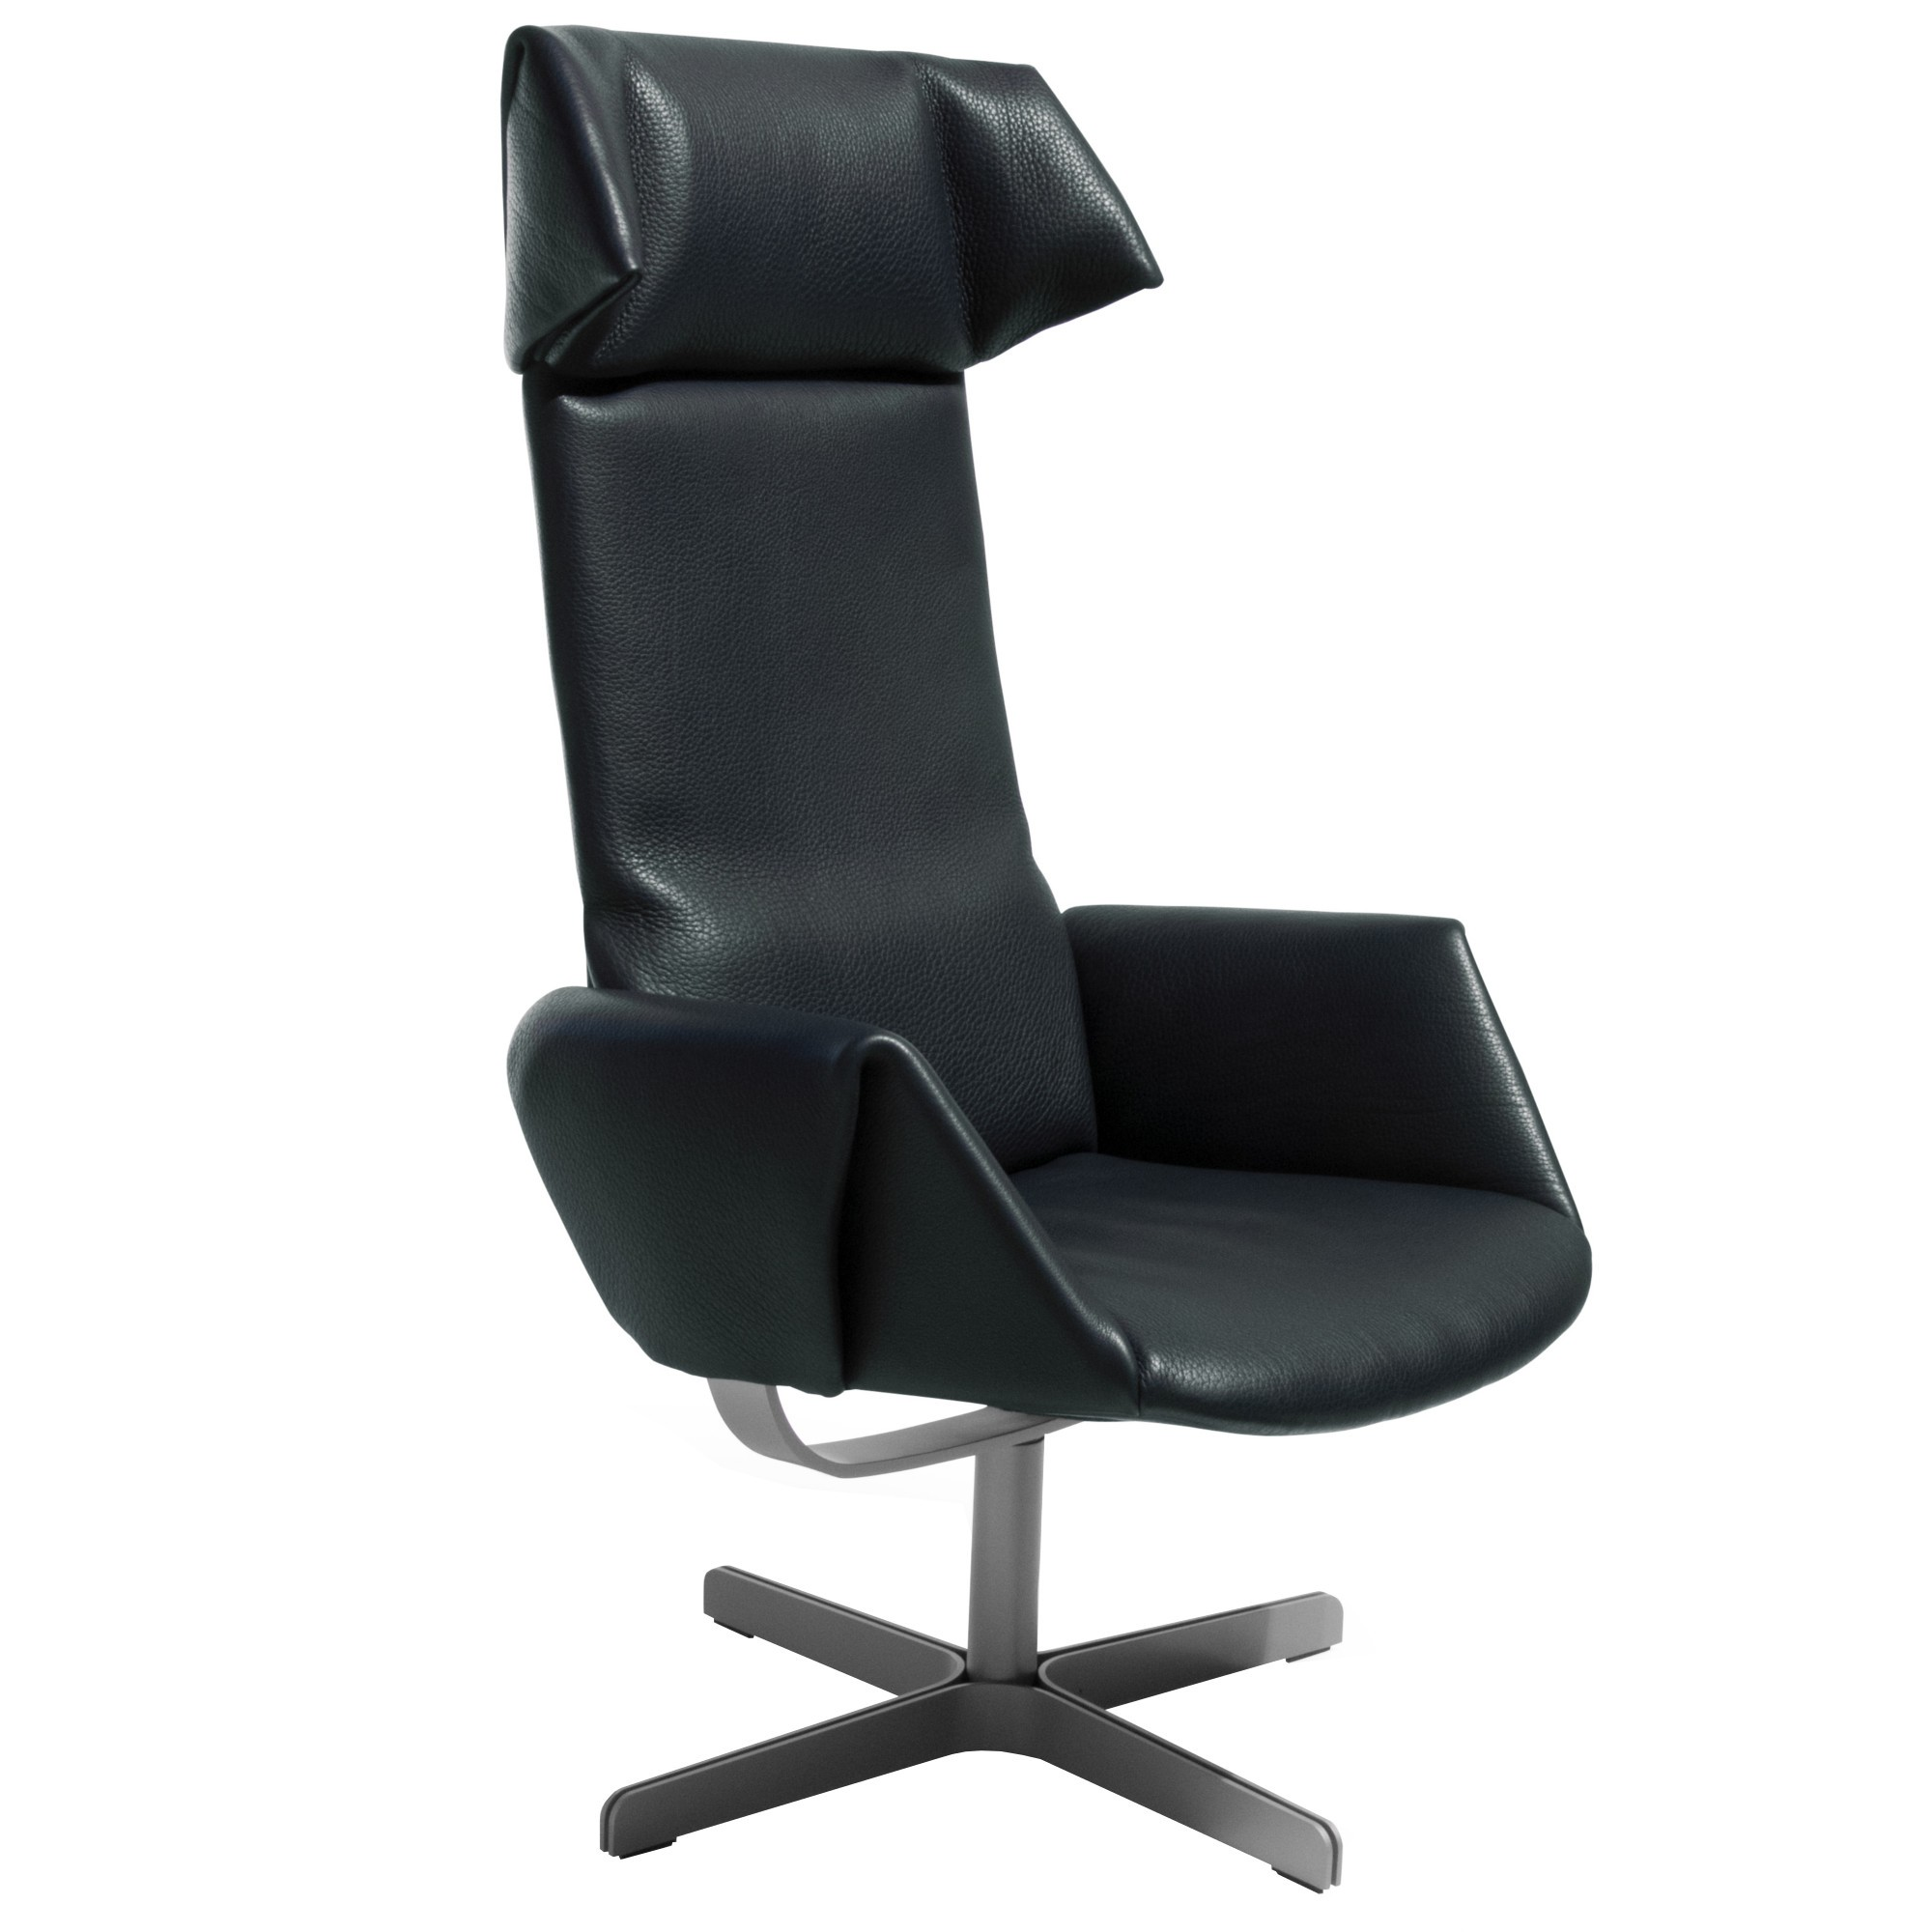 Amico Relax Poltrone.Ds 343 Poltrona Relax